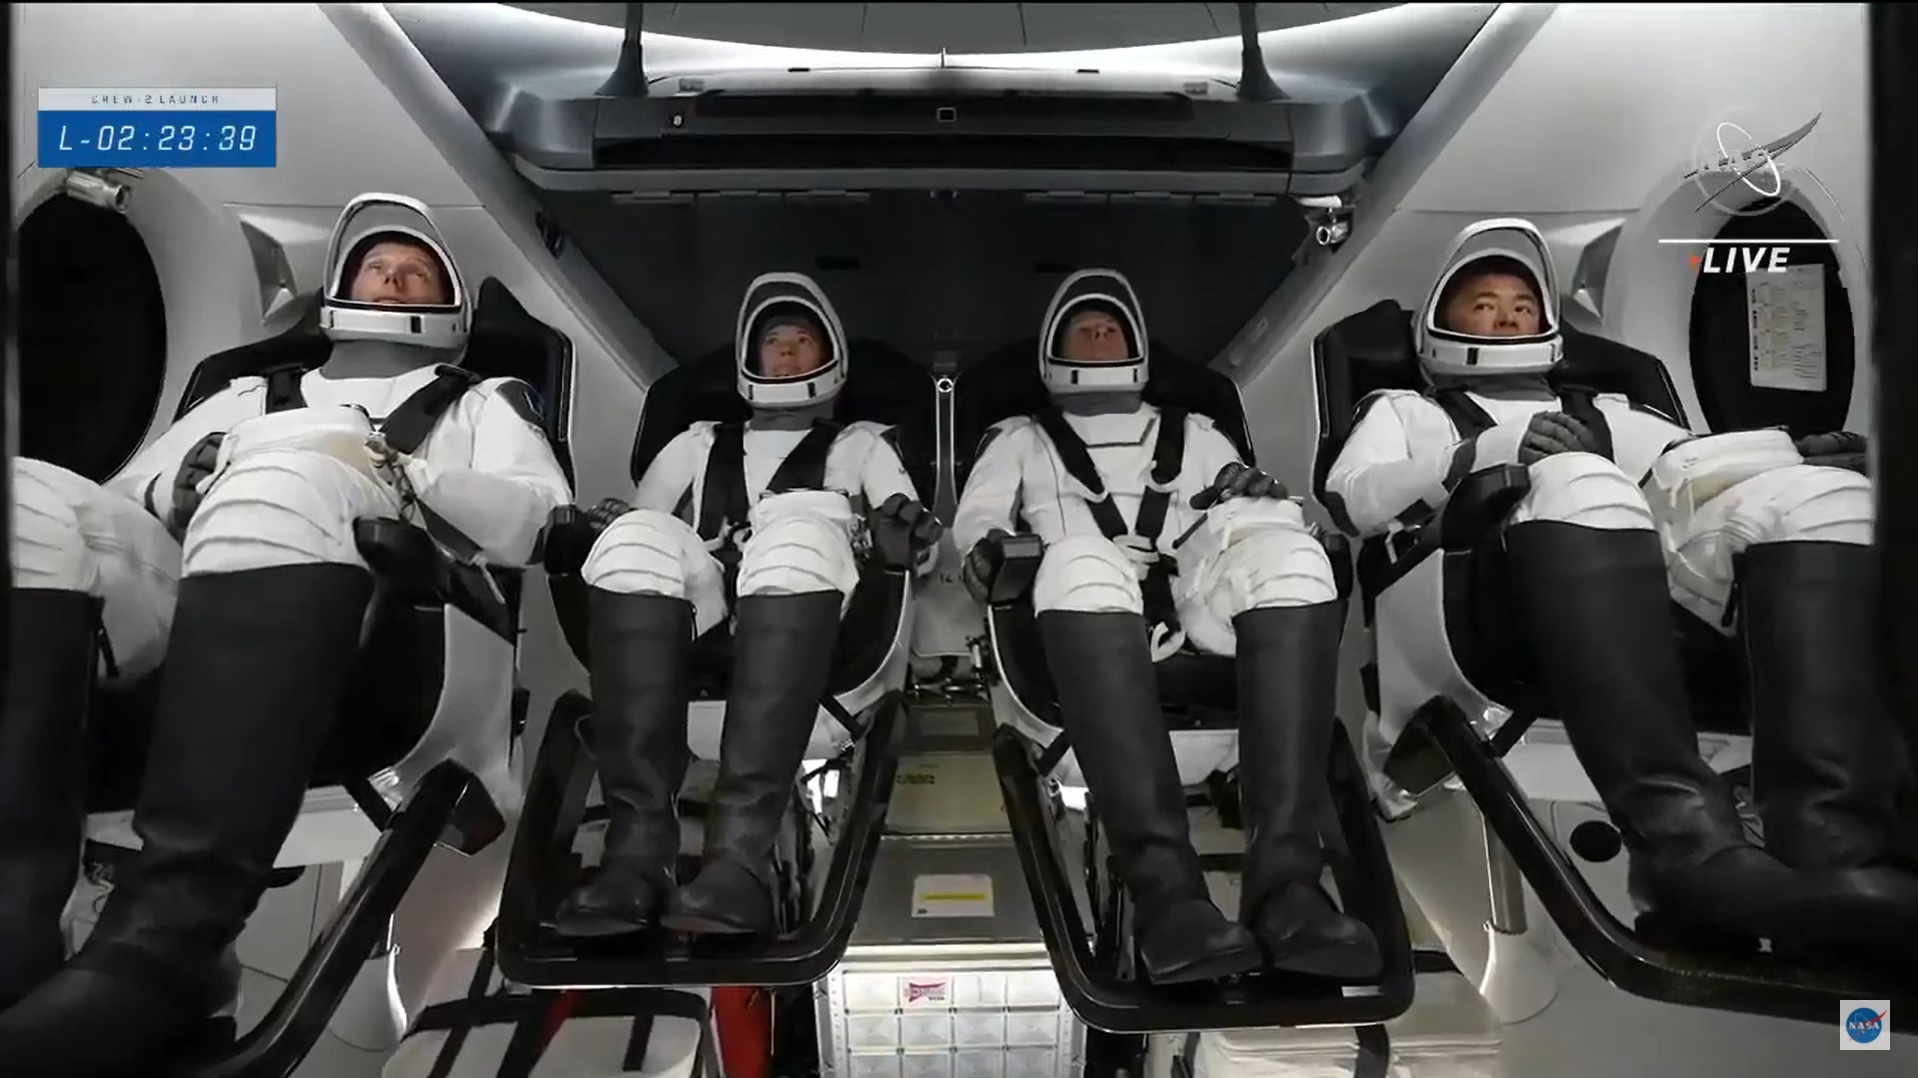 NASA's Crew-2 astronauts are seen aboard their SpaceX Crew Dragon Endeavour after boarding the craft for a launch to the International Space Station from Pad 39A of NASA's Kennedy Space Center in Cape Canaveral, Florida on April 23, 2021.